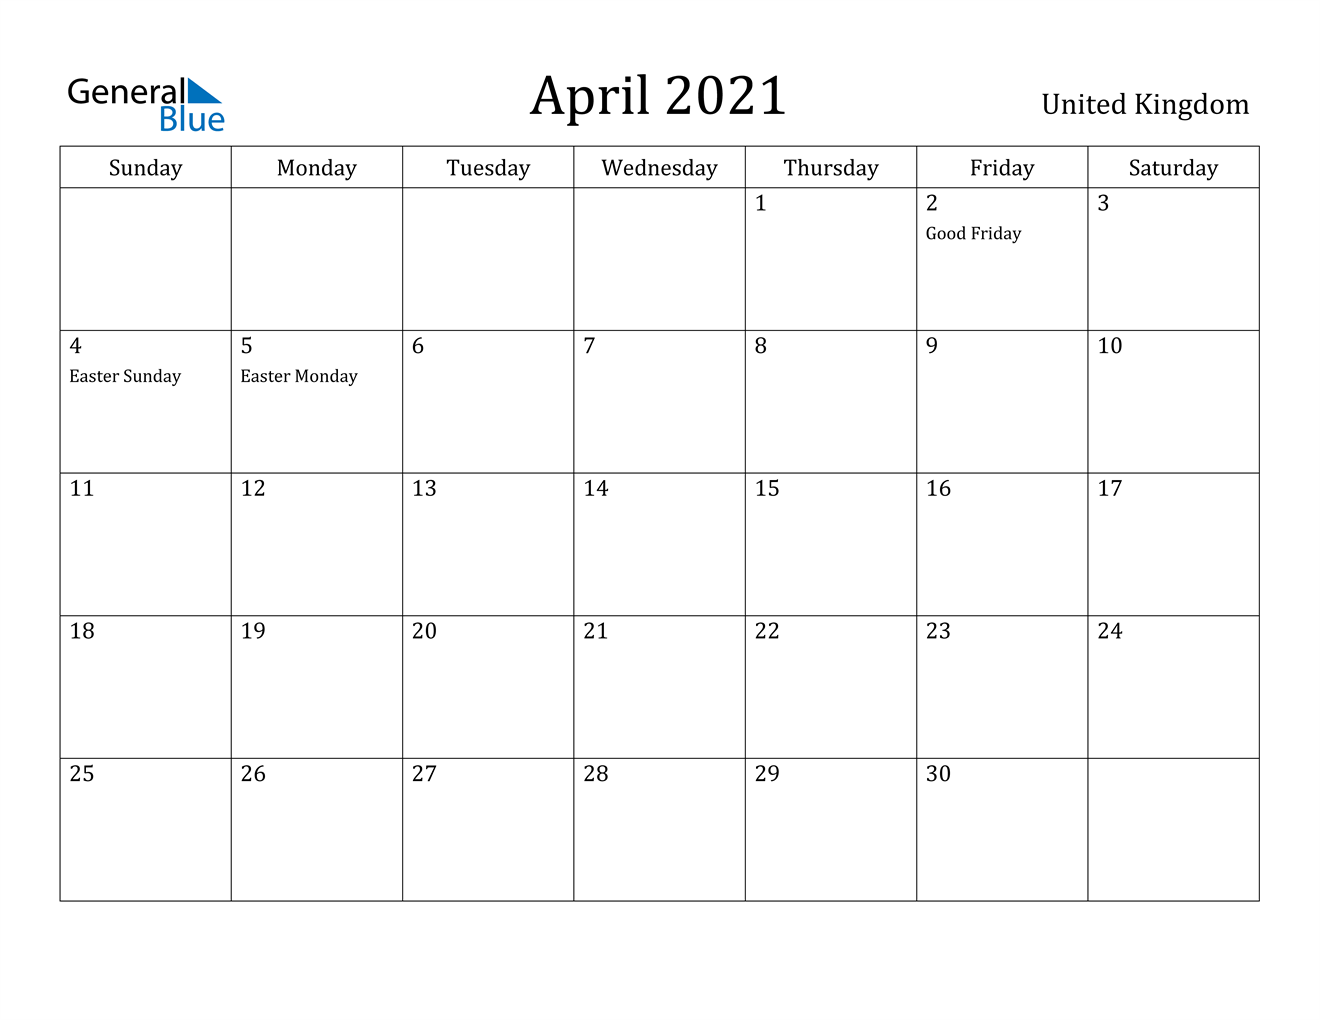 April 2021 Calendar - United Kingdom